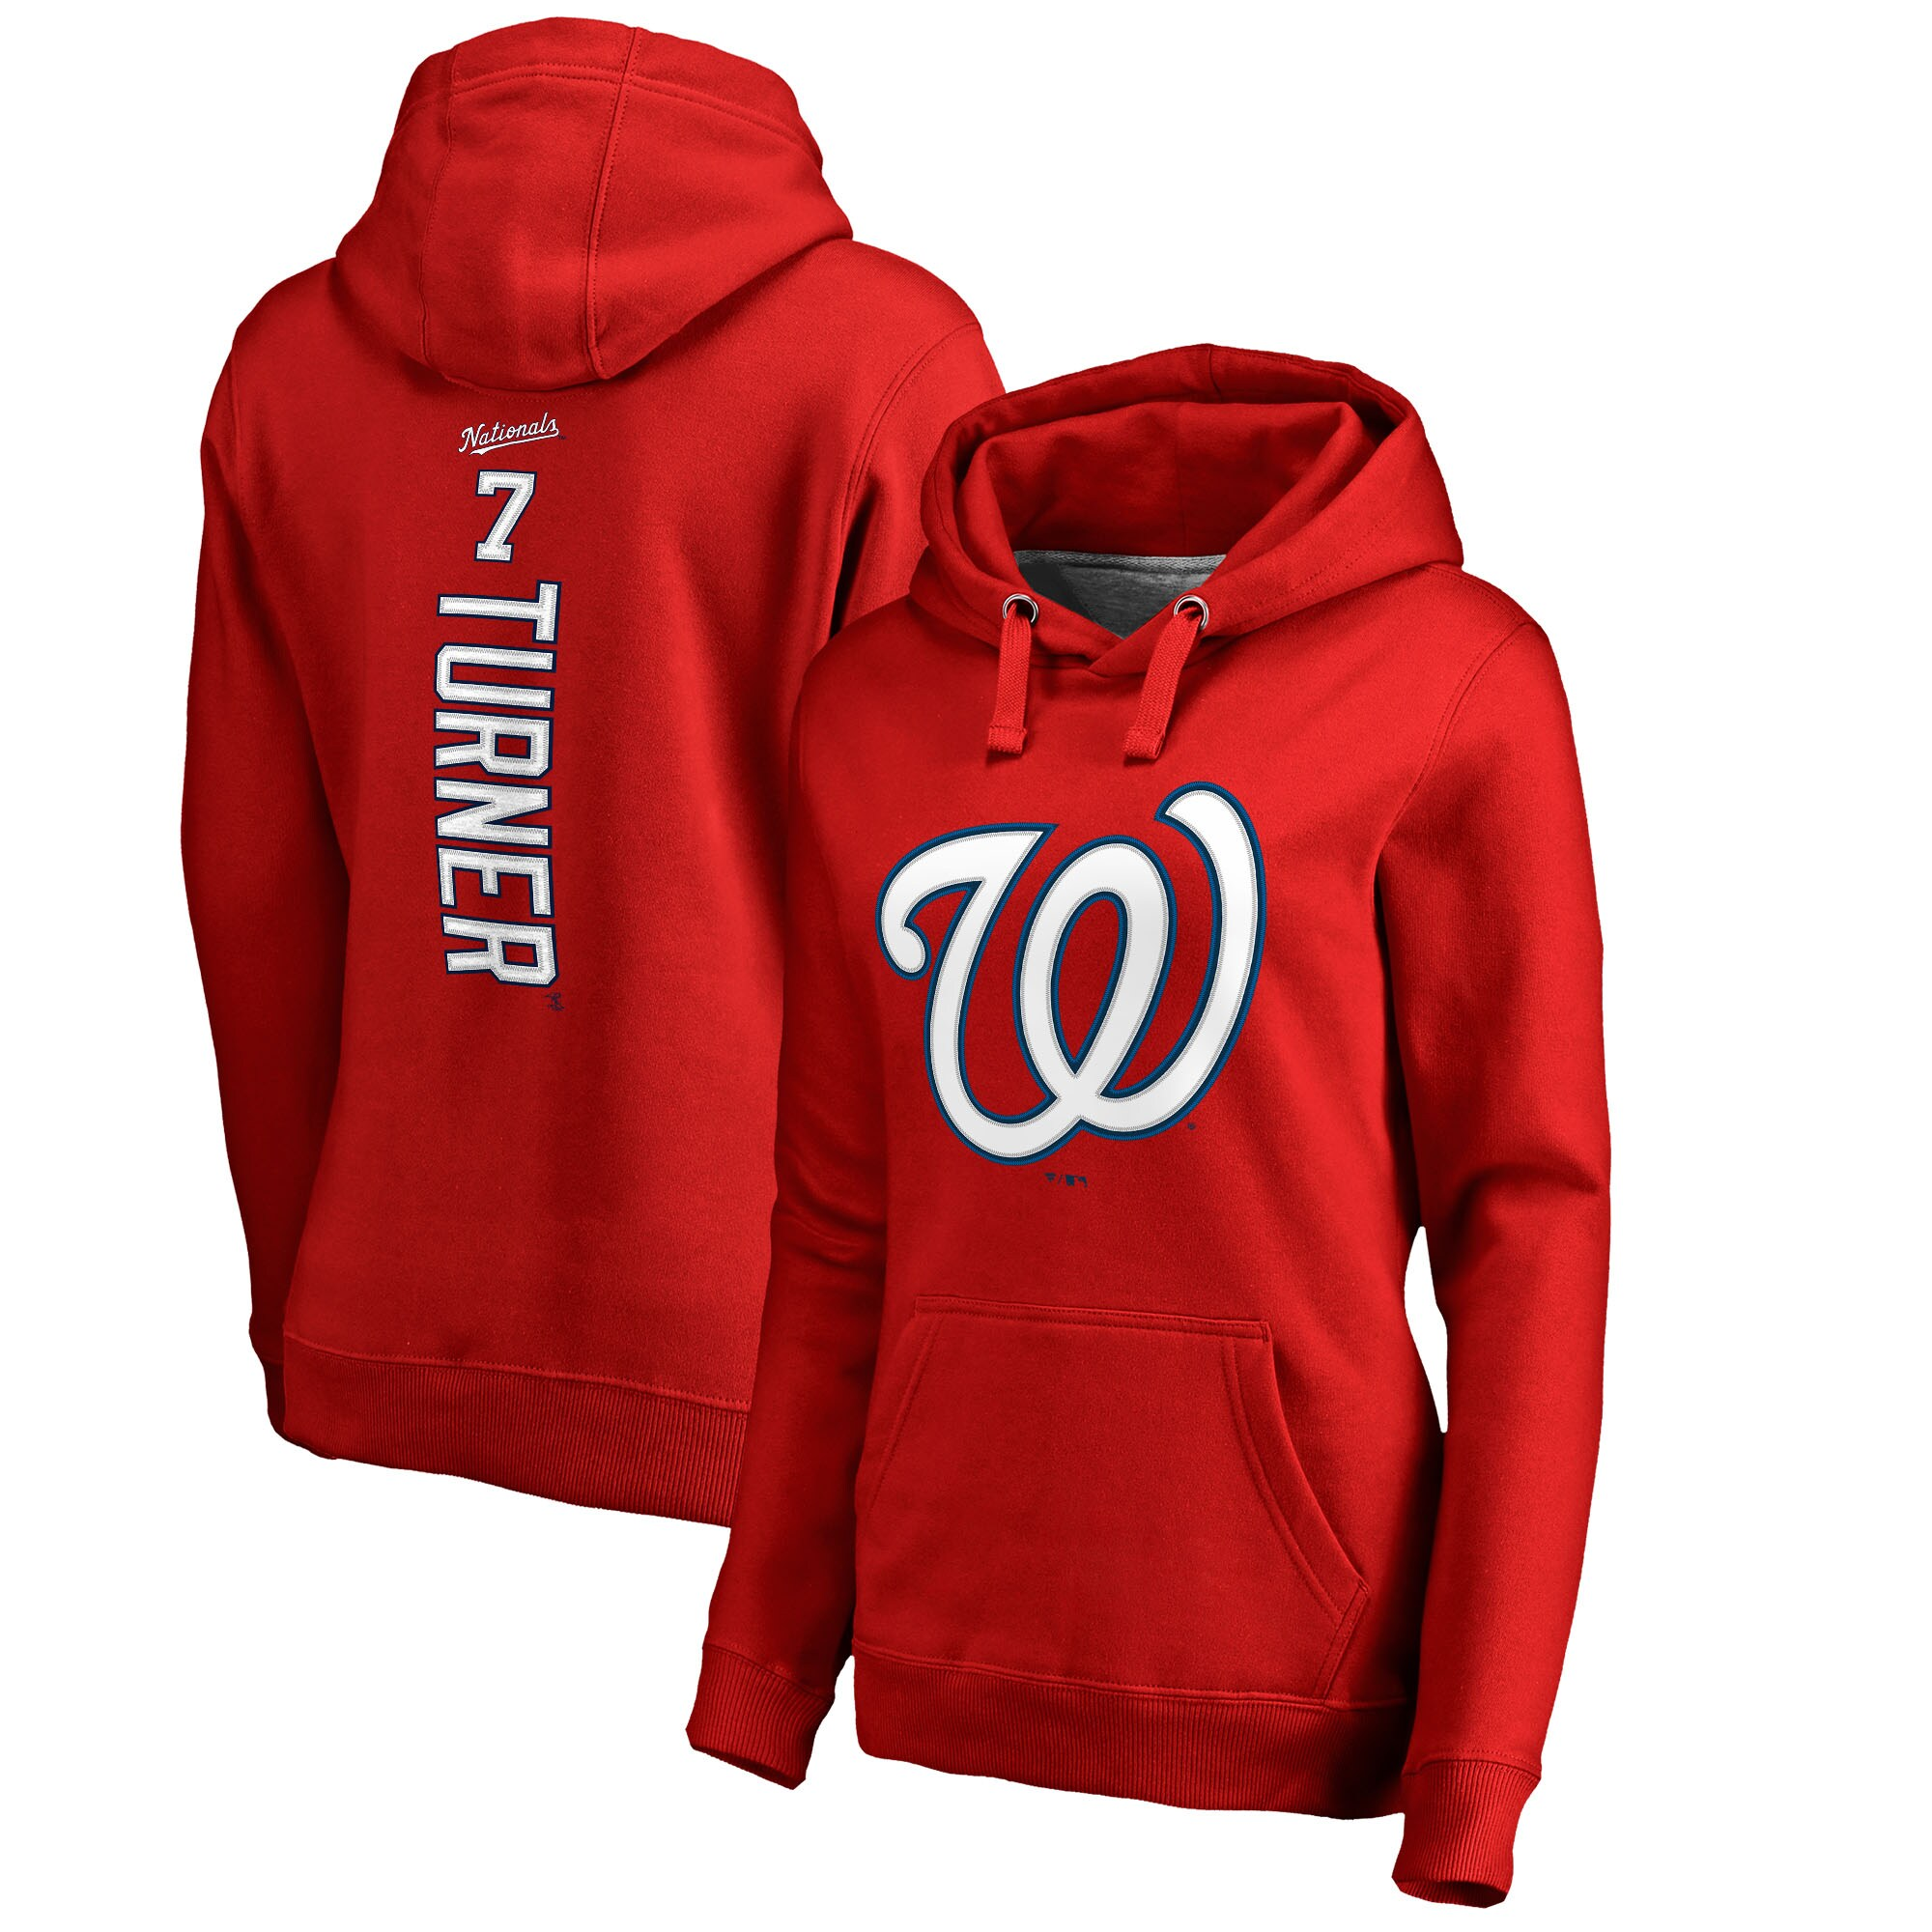 Trea Turner Washington Nationals Fanatics Branded Women's Backer Pullover Hoodie - Red